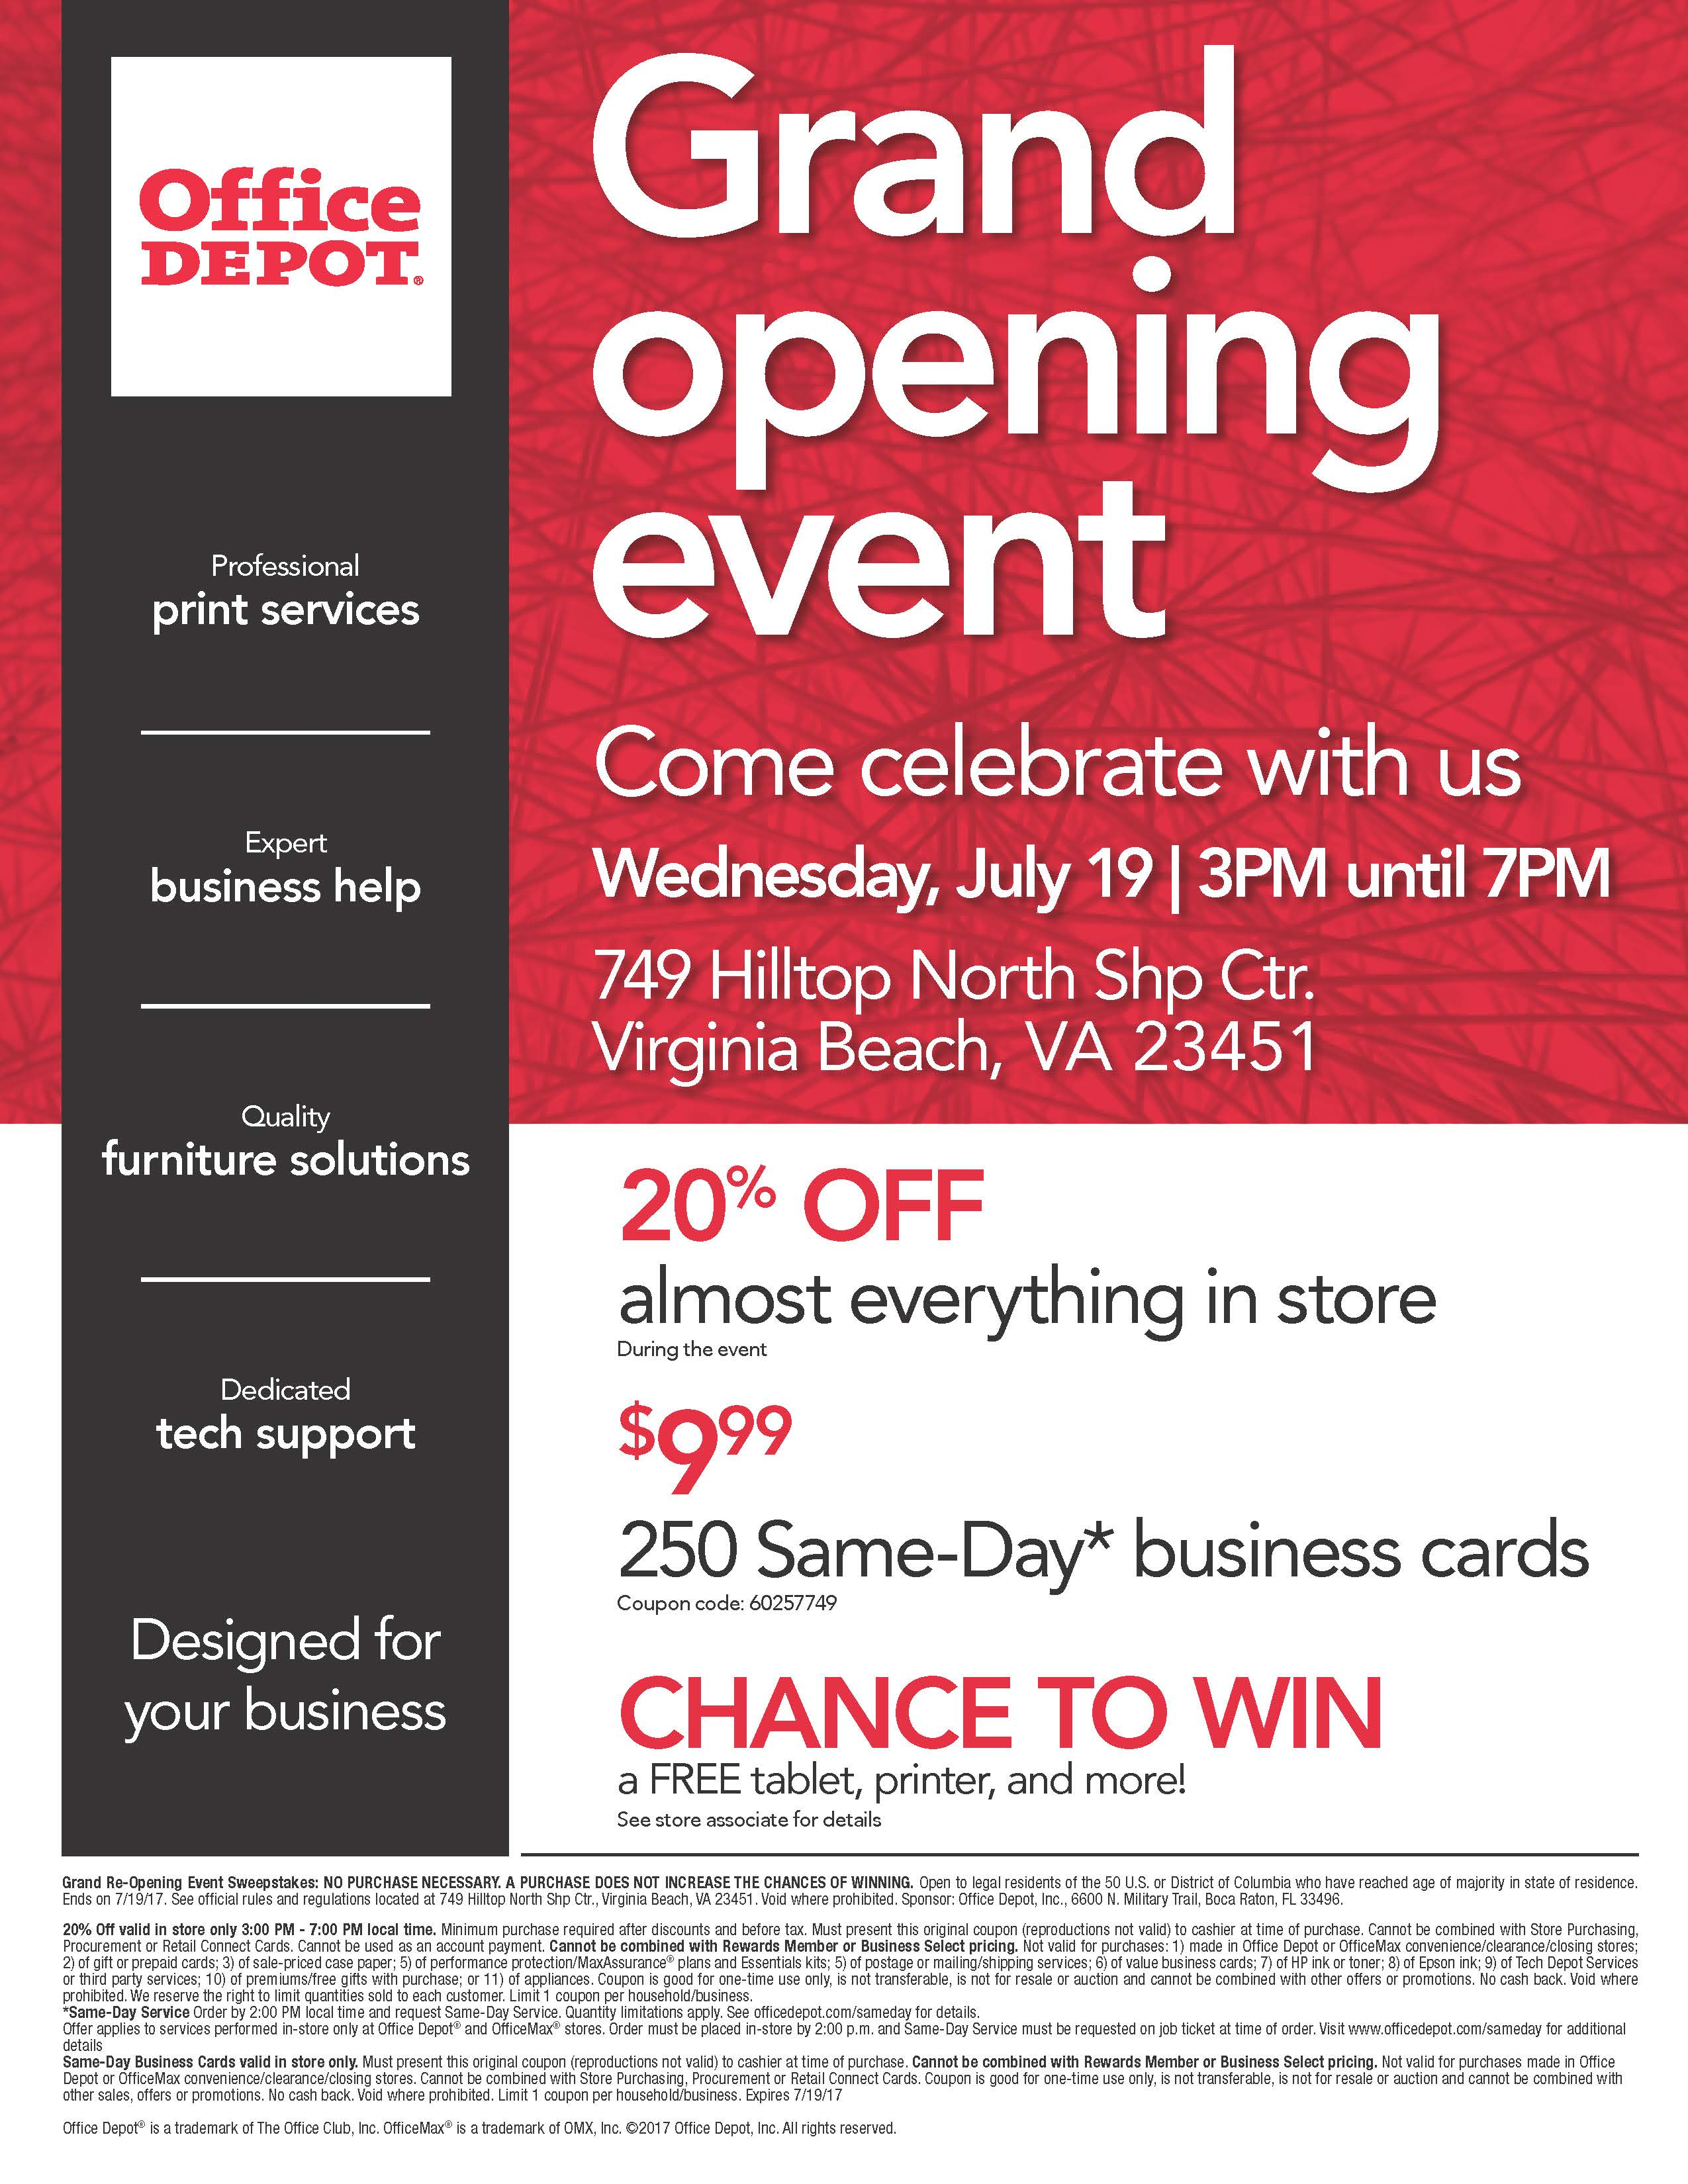 Office depot rewards coupons - Office Depot Grand Reopening